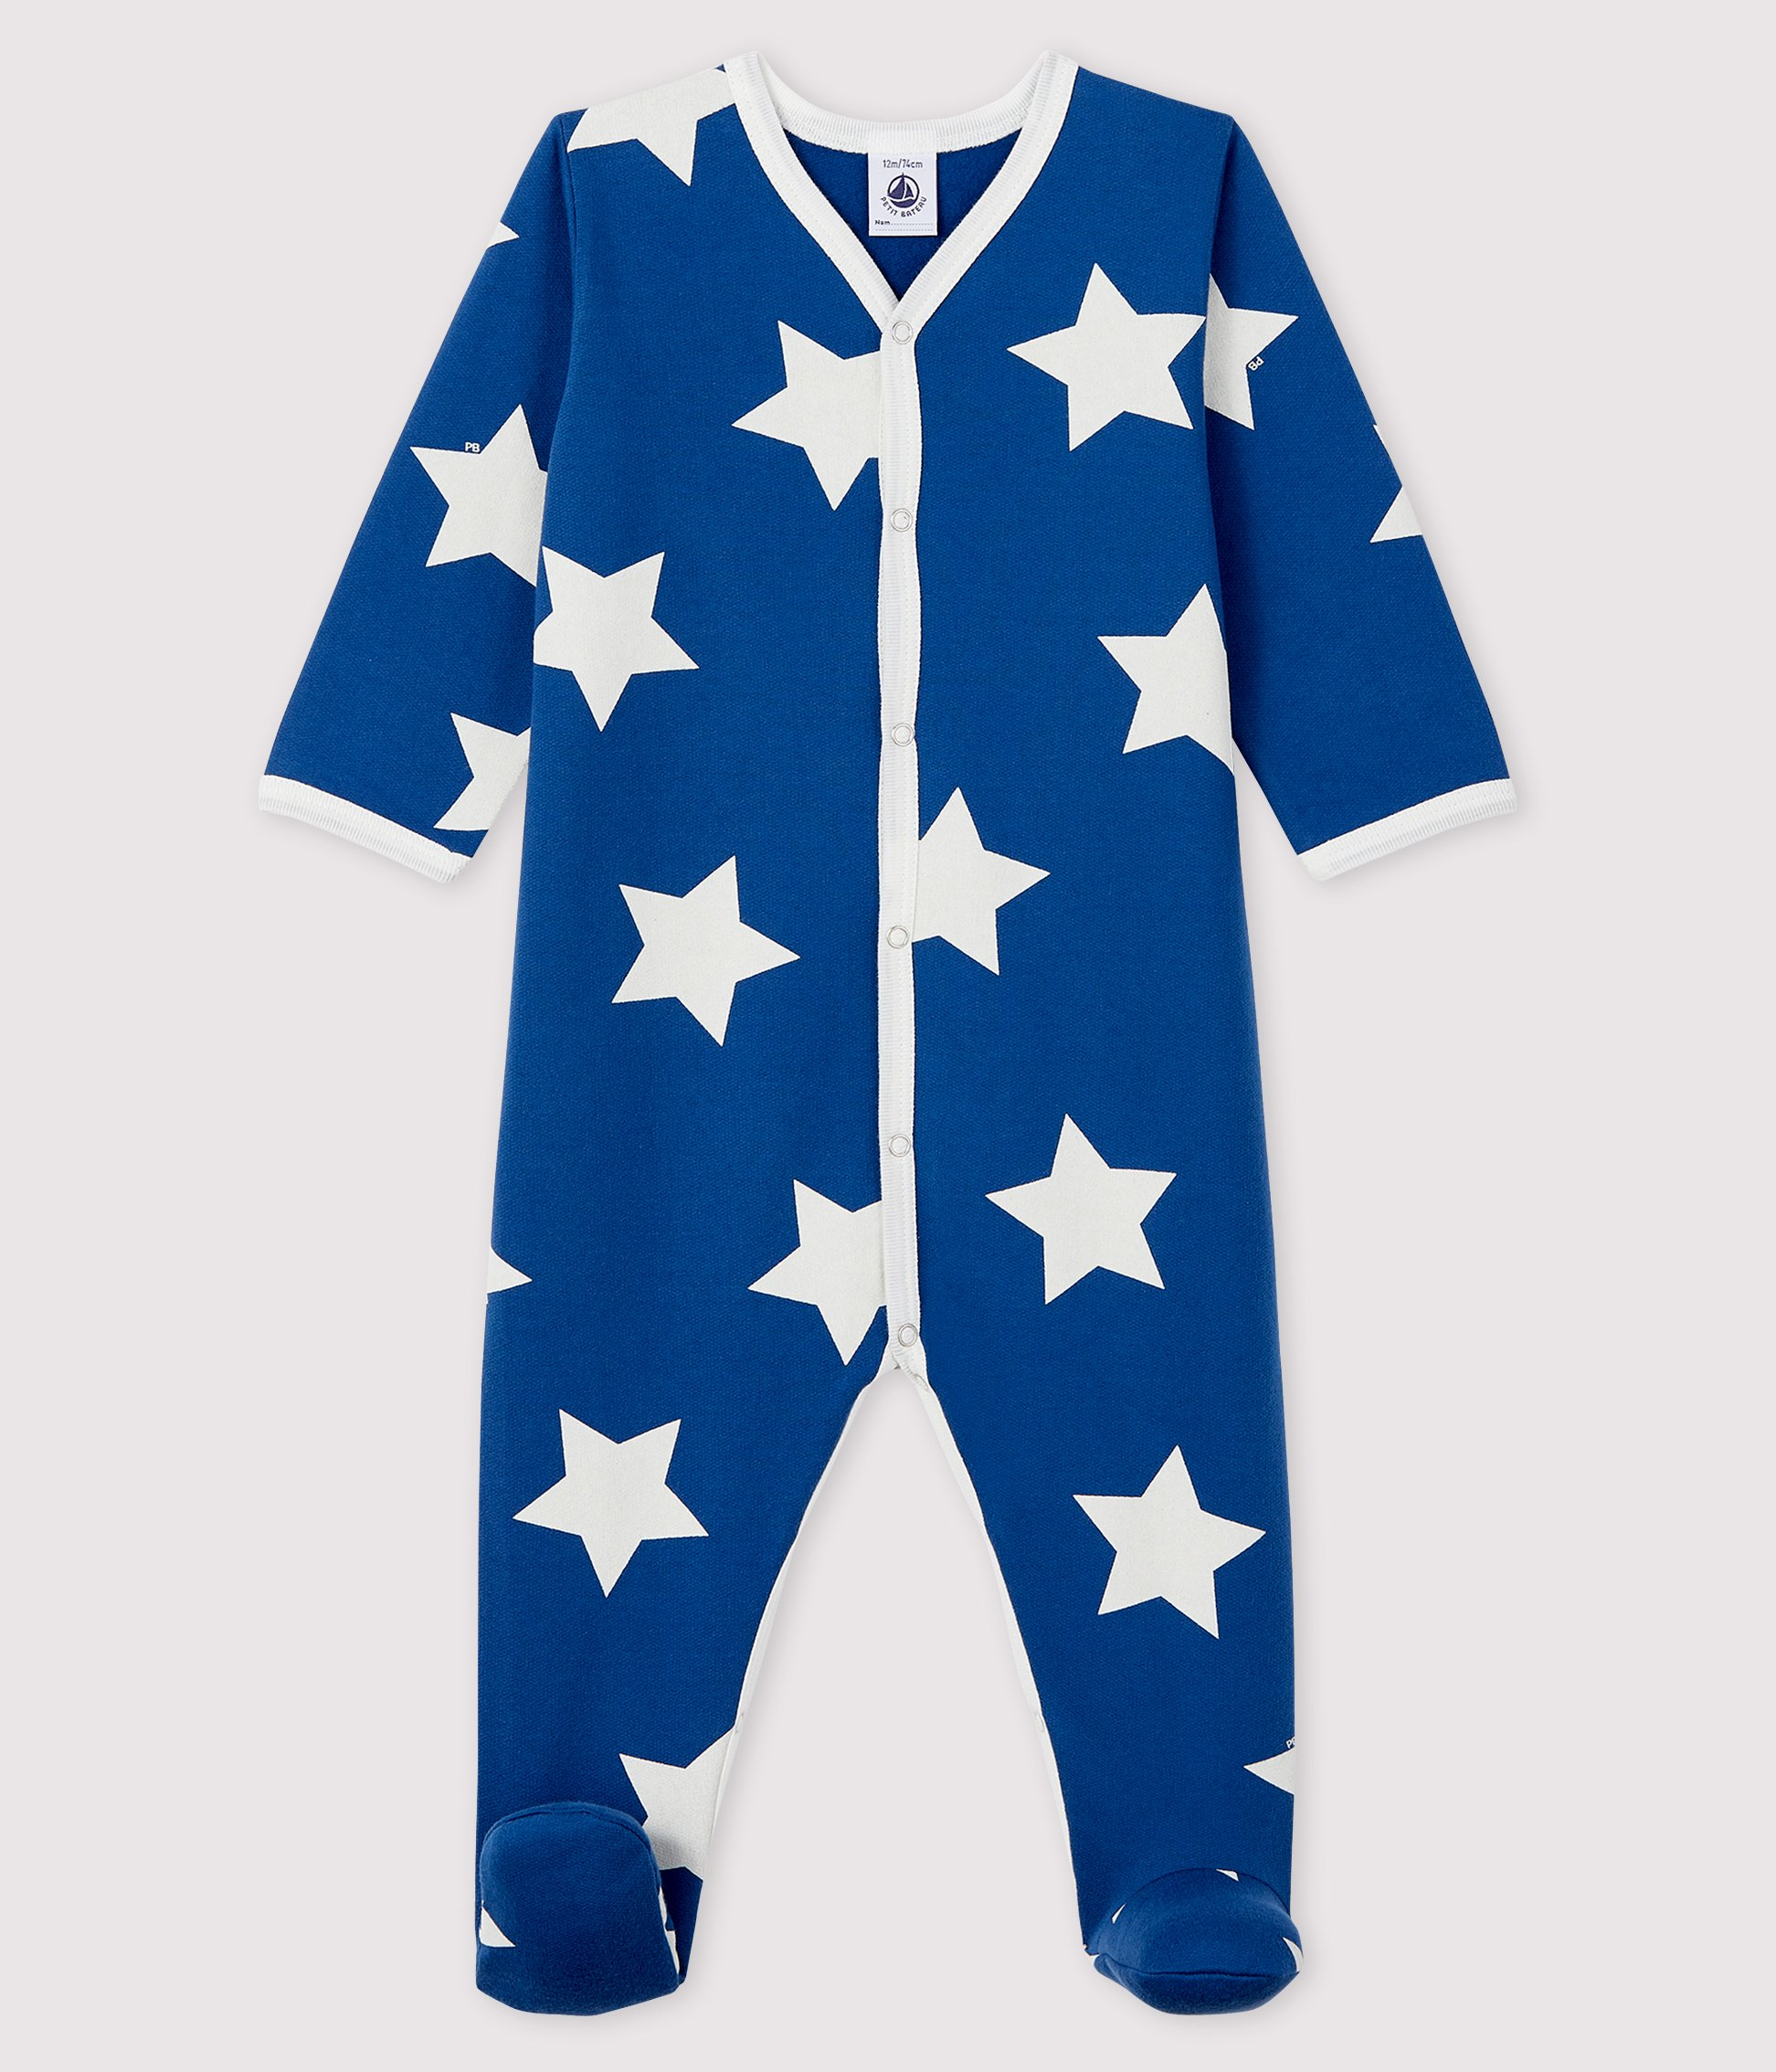 Babies' Blue Starry Fleece Sleepsuit